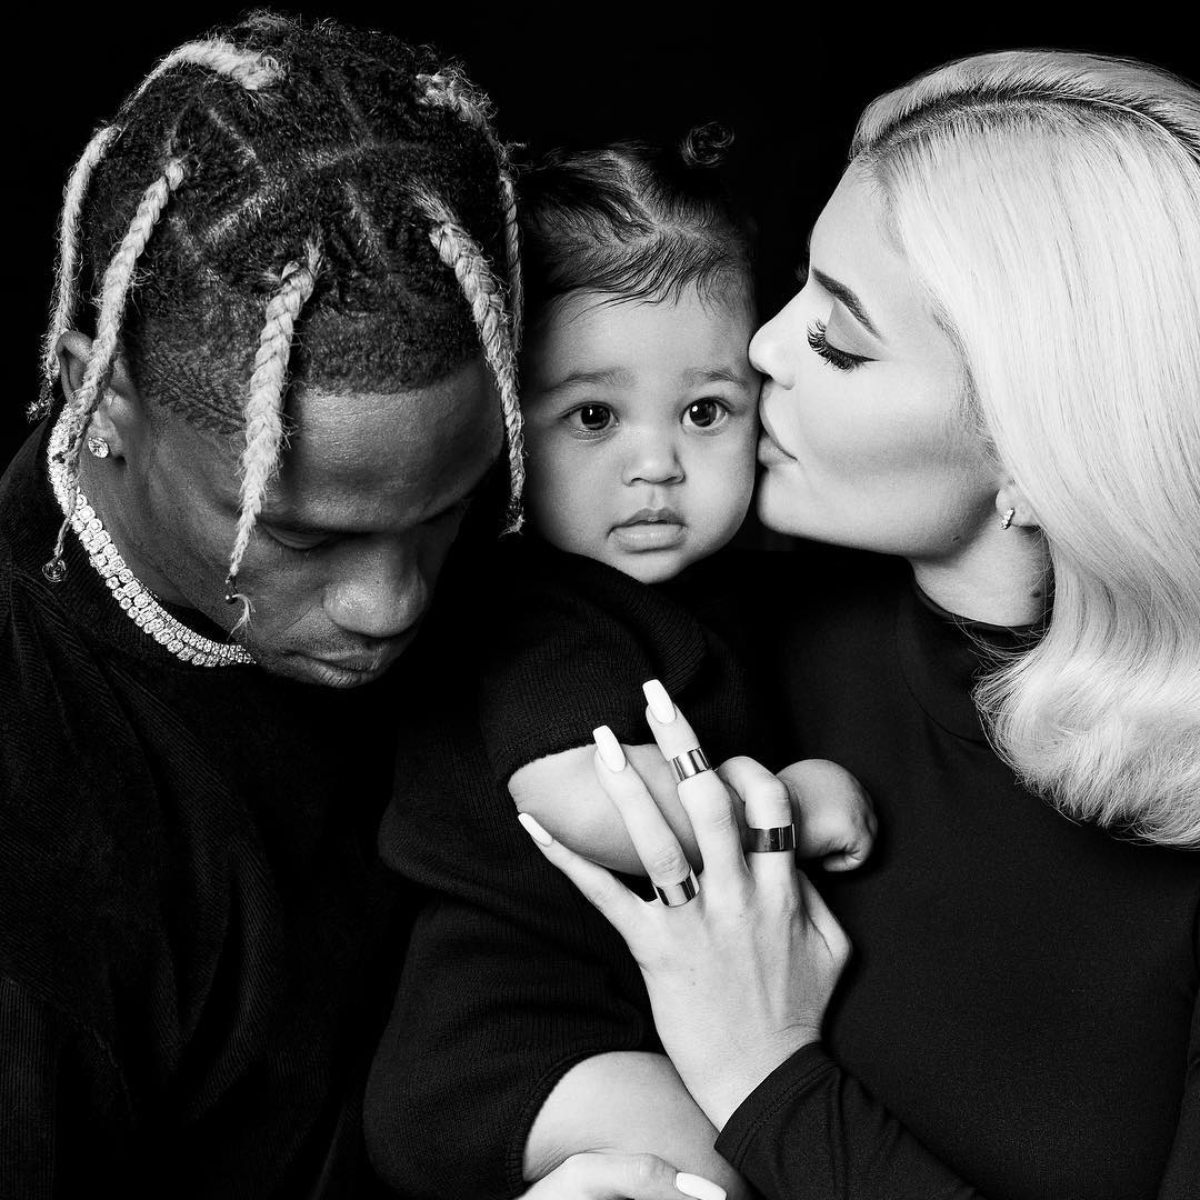 223ecc354b9a Travis Scott had recently cancelled a concert at KeyBank Center in Buffalo,  New York. Apparently, he did so to be by his girlfriend's side after she ...